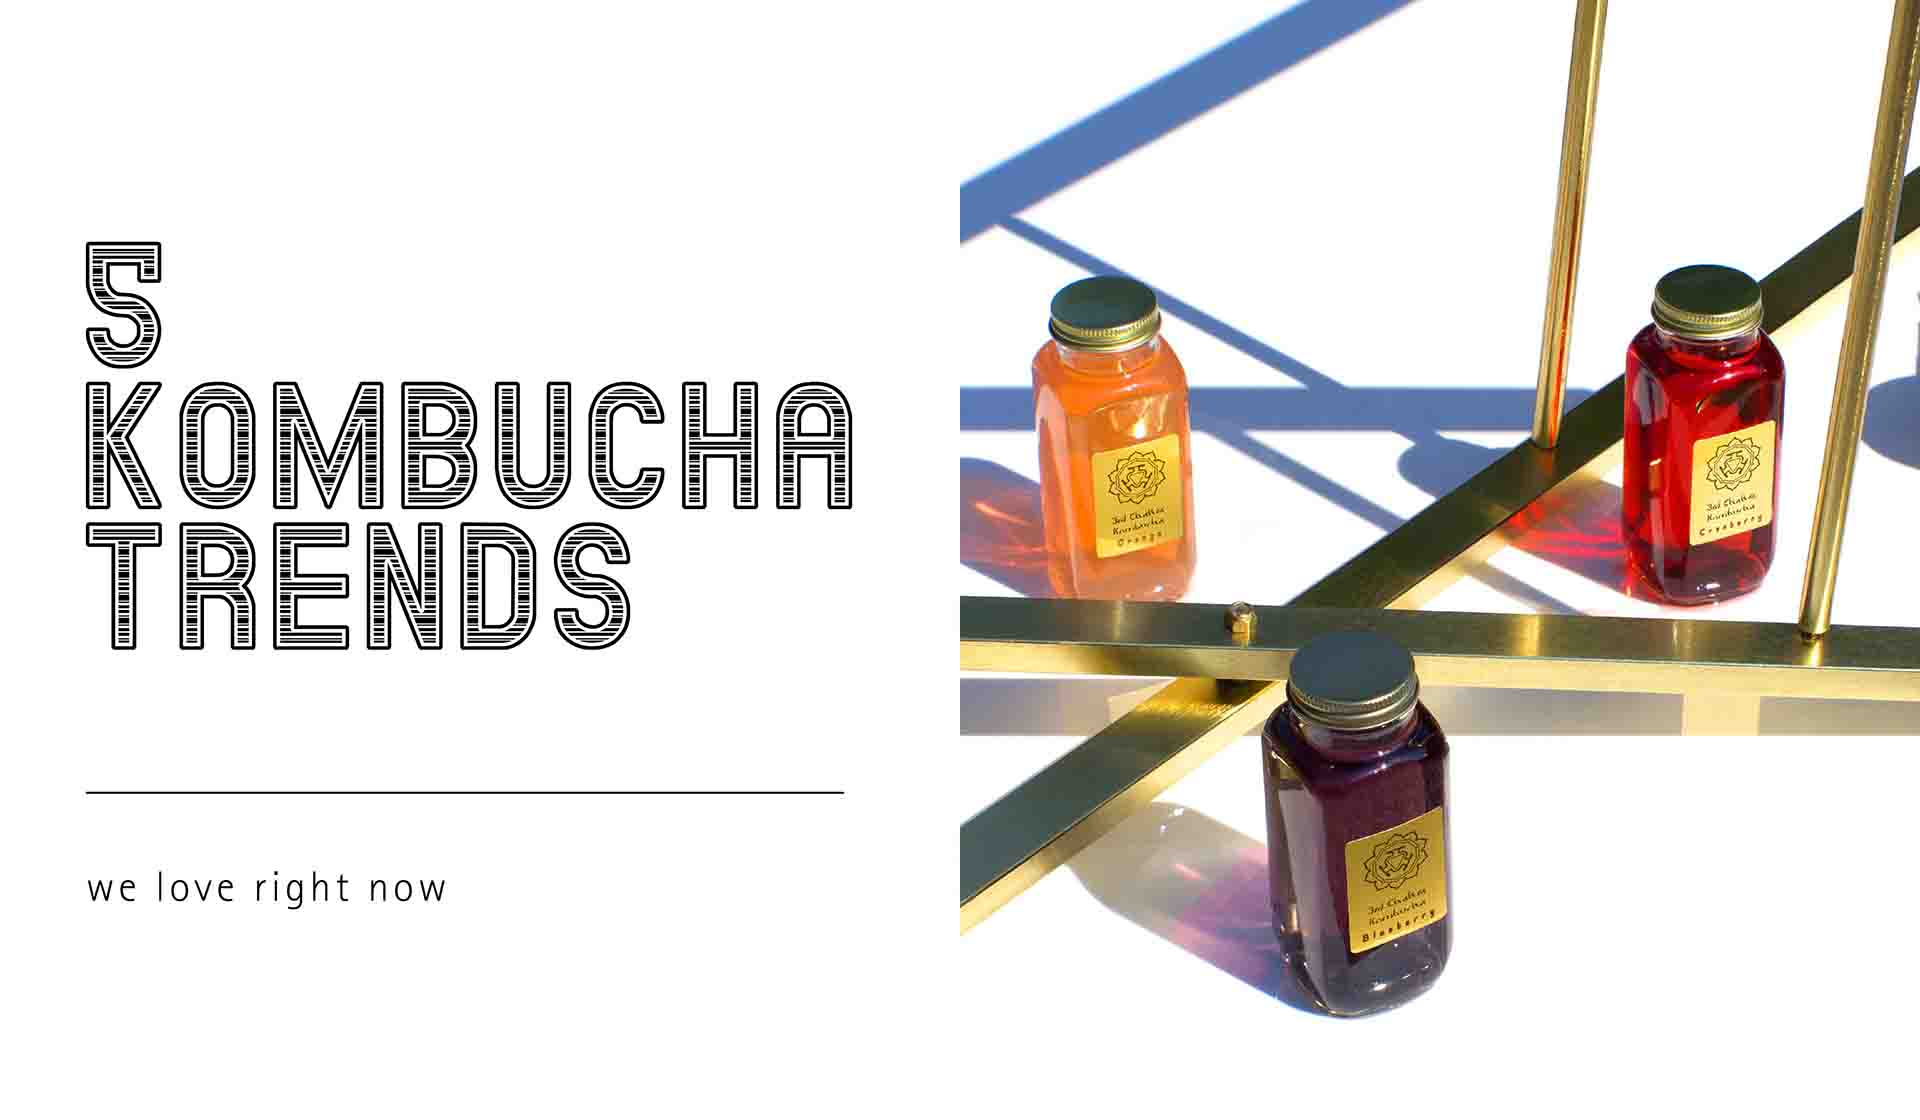 Five Kombucha Bottle Branding Trends We Love Right Now